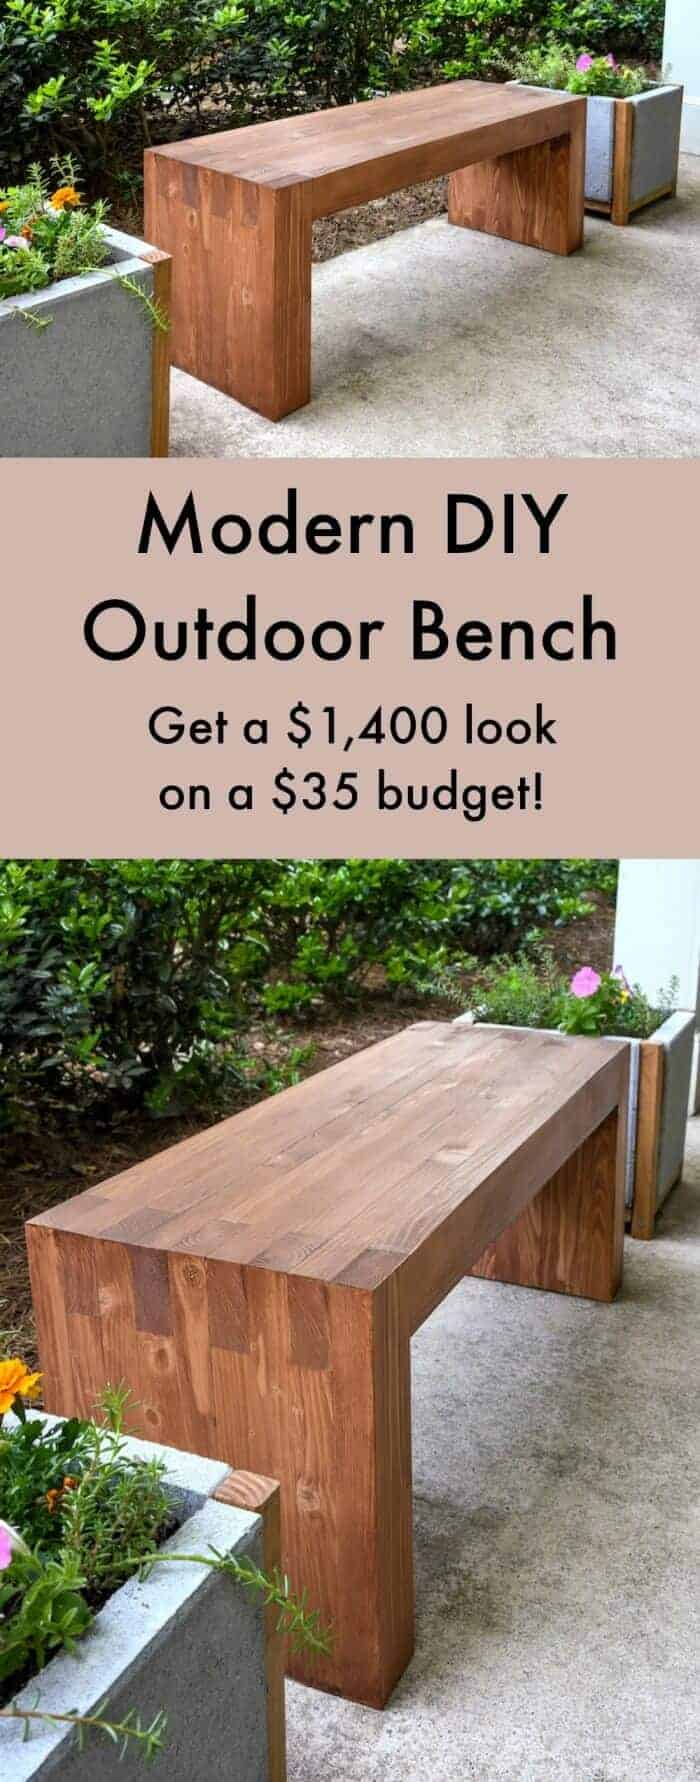 Diy Budget Backyard Ideas Princess Pinky Girl intended for 11 Genius Designs of How to Make Diy Backyard Landscaping On A Budget